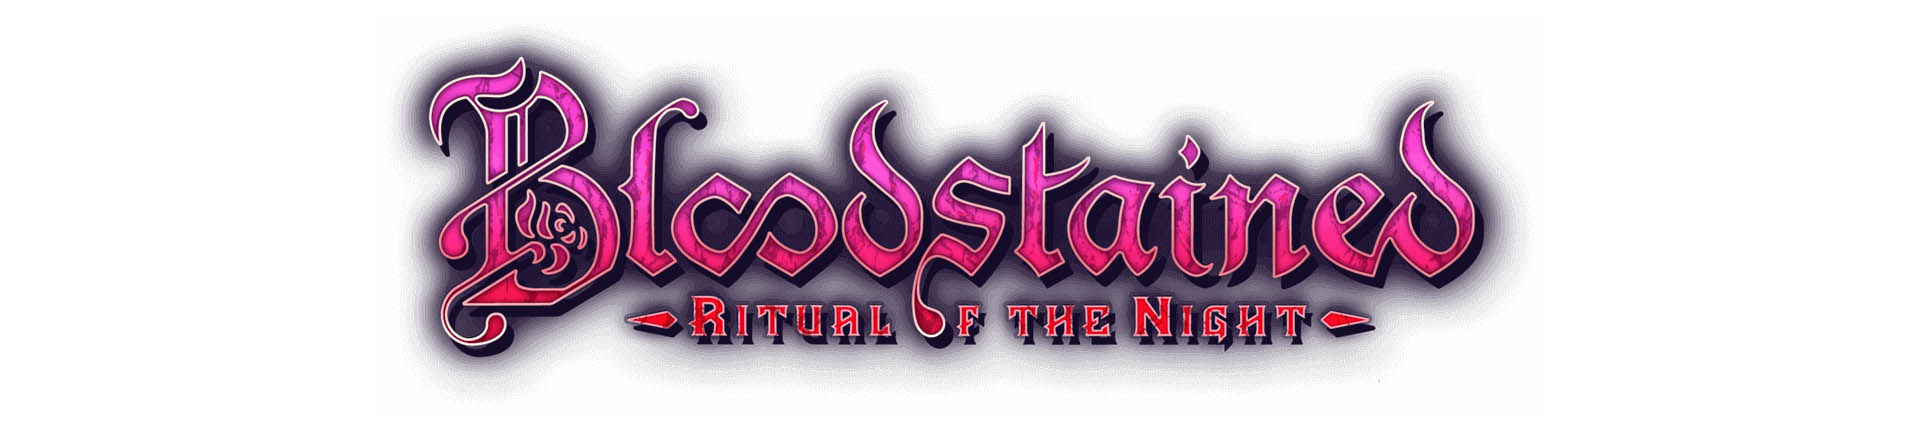 <a href='https://www.mightygamesmag.de/all-game-list/bloodstained-ritual-of-the-night/'>Zum Spiel</a>